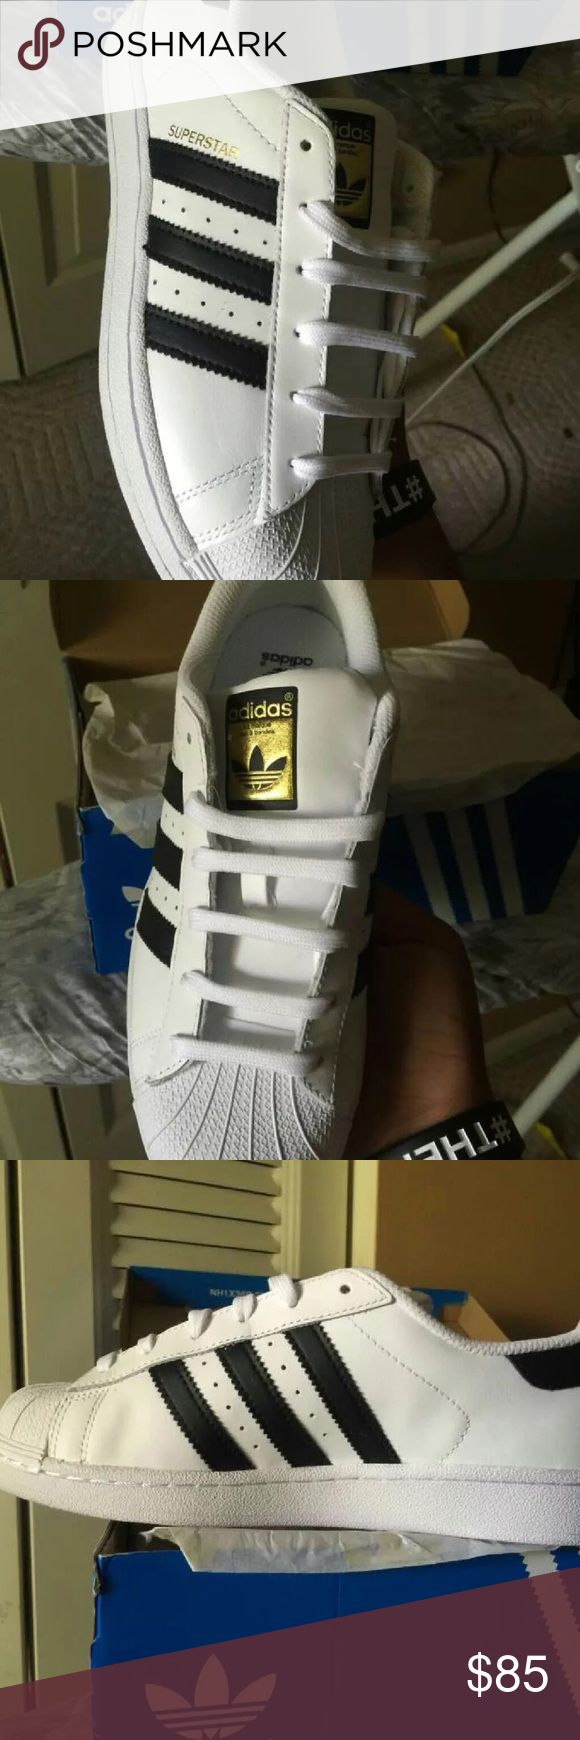 Adidas Superstars Black and white adidas superstars size:6 Never Worn! Brand New! Price possibly negotiated Adidas Shoes Athletic Shoes